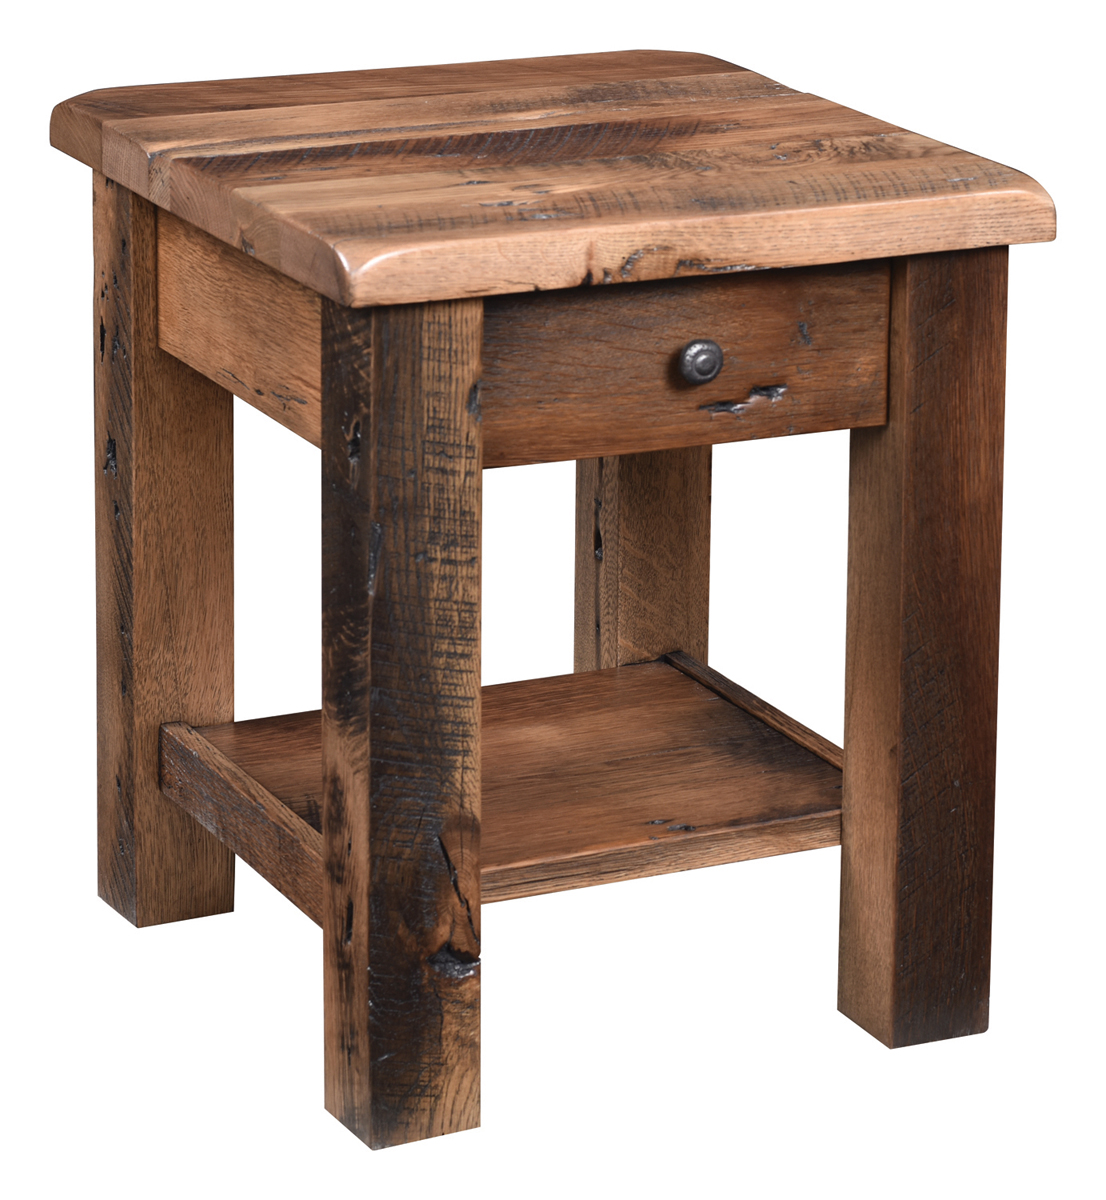 off rainier reclaimed barnwood end table amish accent ikea wooden storage box office high back dining room chairs antique writing desk with baskets dale tiffany lamp patio winter